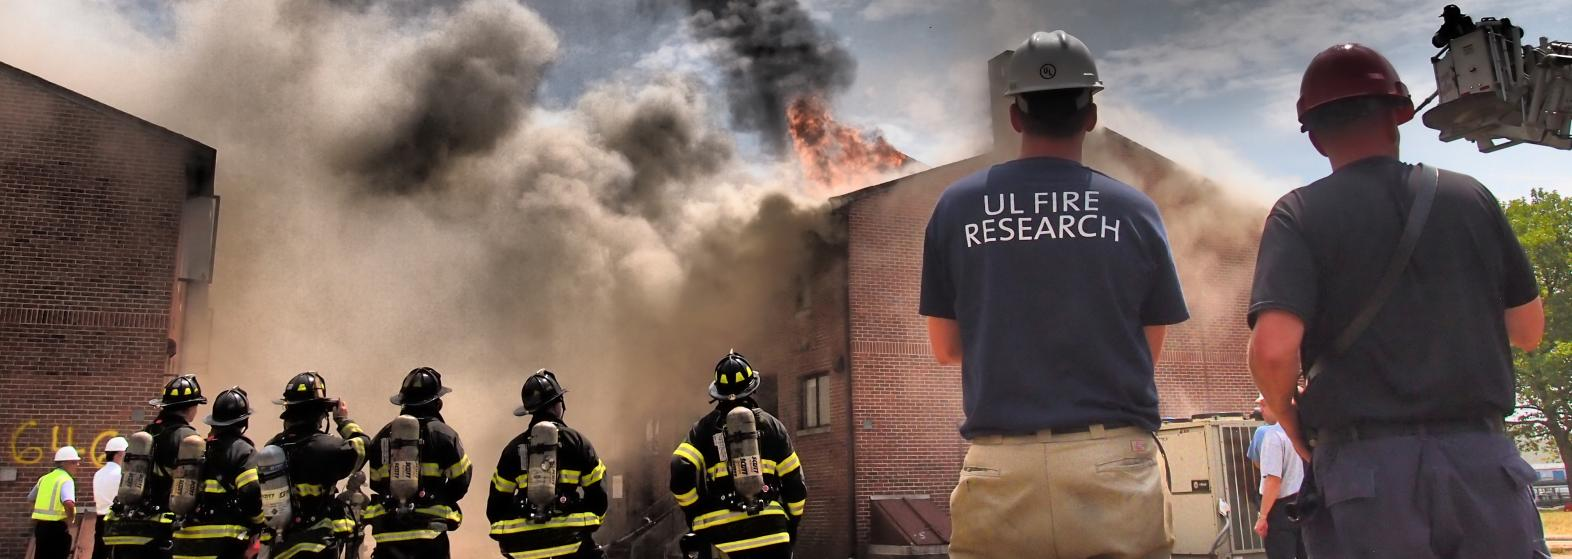 firefighters and UL researchers standing in front of a building on fire